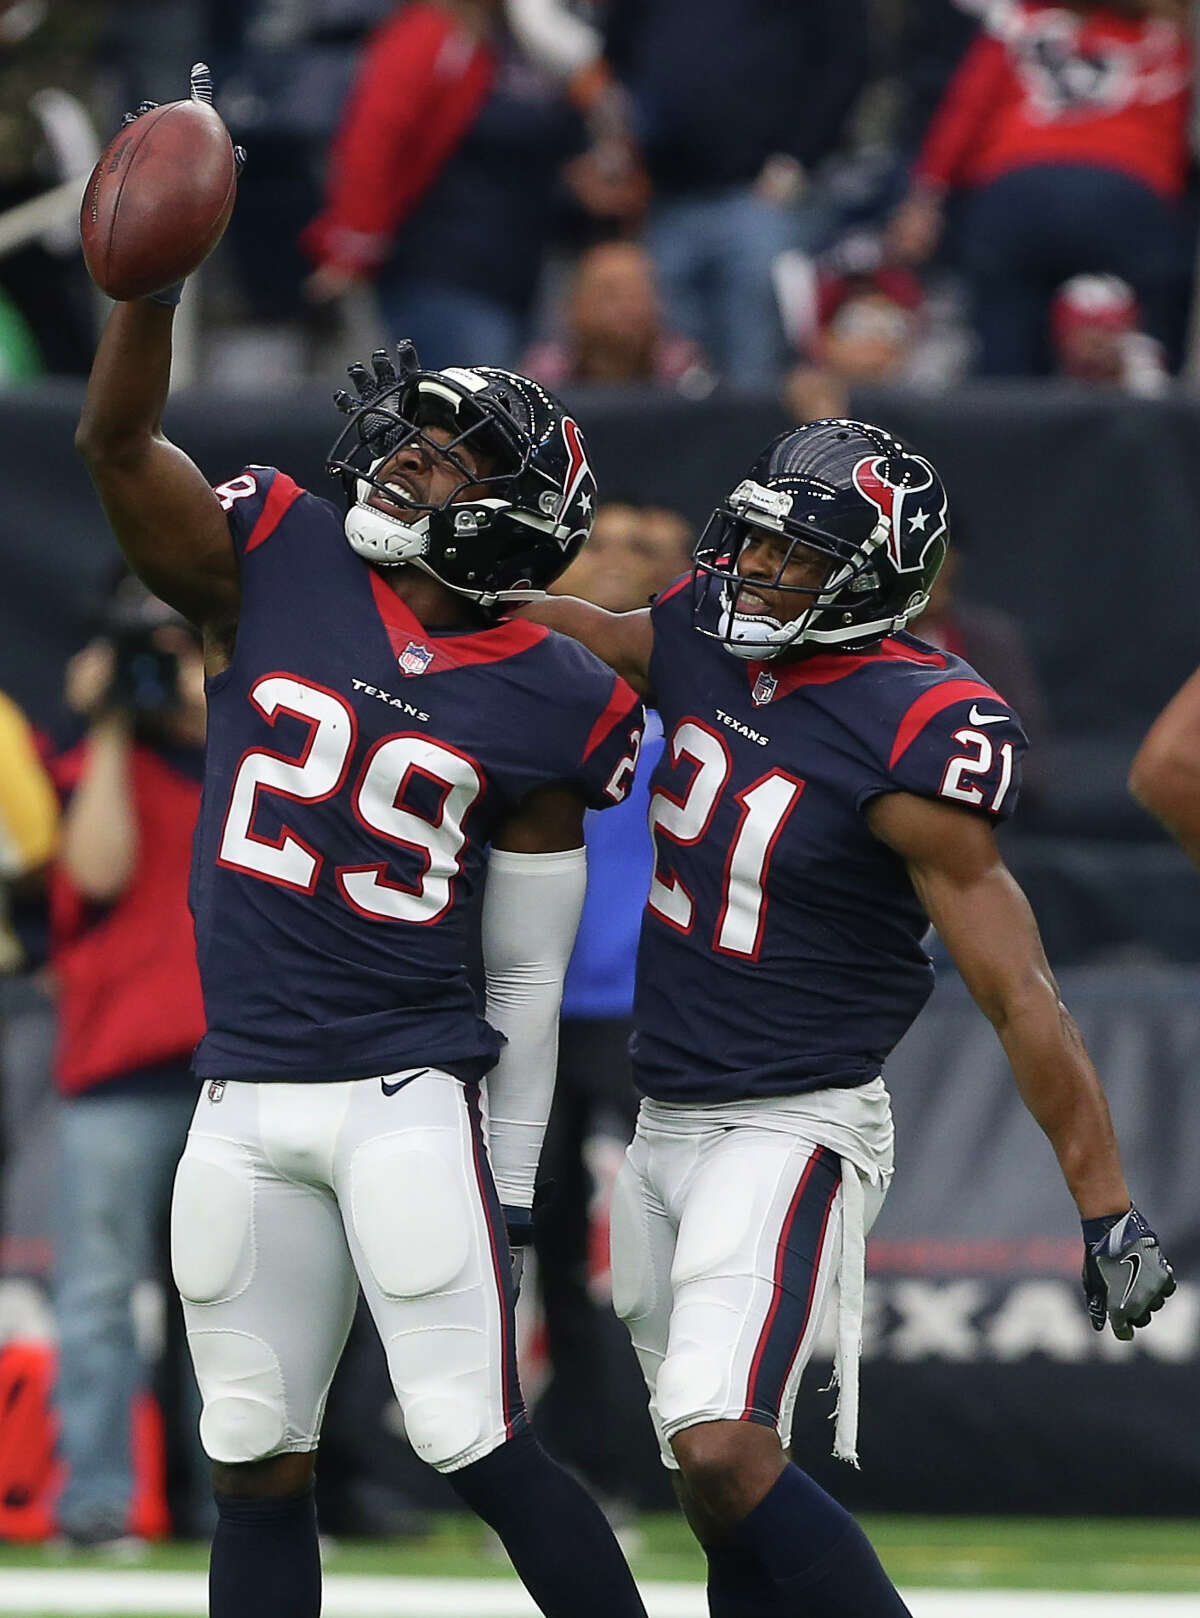 Houston Texans strong safety Marcus Gilchrist (21) joins Andre Hal (29) to celebrate Hal's interception during the fourth quarter of a NFL game against the Arizona Cardinals at NRG Stadium on Sunday, Nov. 19, 2017, in Houston. The Houston Texans defeated the Arizona Cardinals 31-21.